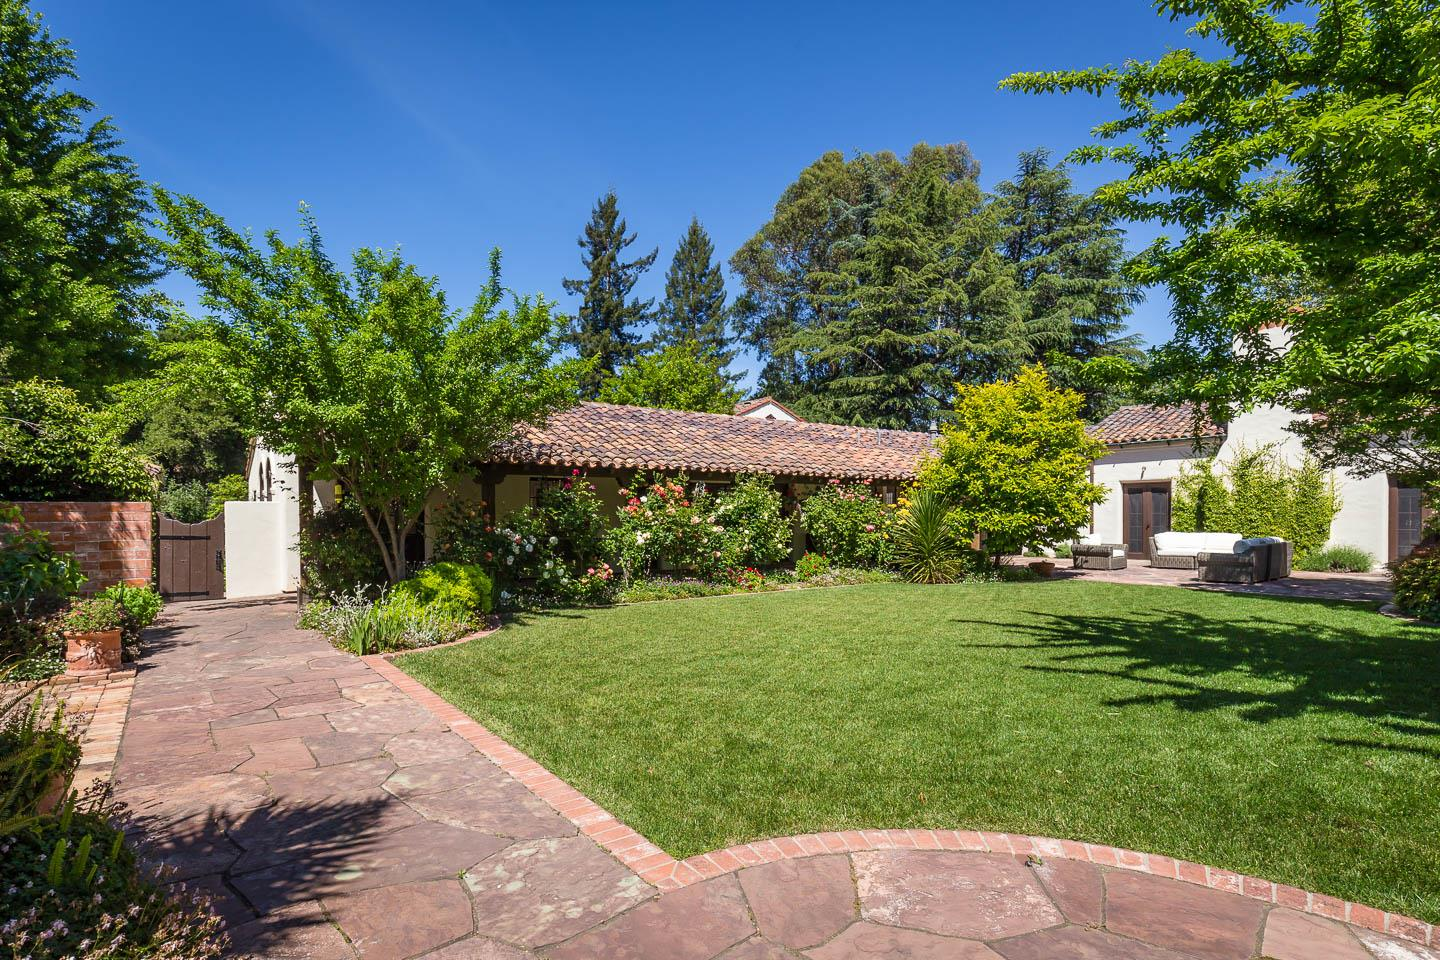 Additional photo for property listing at 420 Maple Street  Palo Alto, Californie 94301 États-Unis